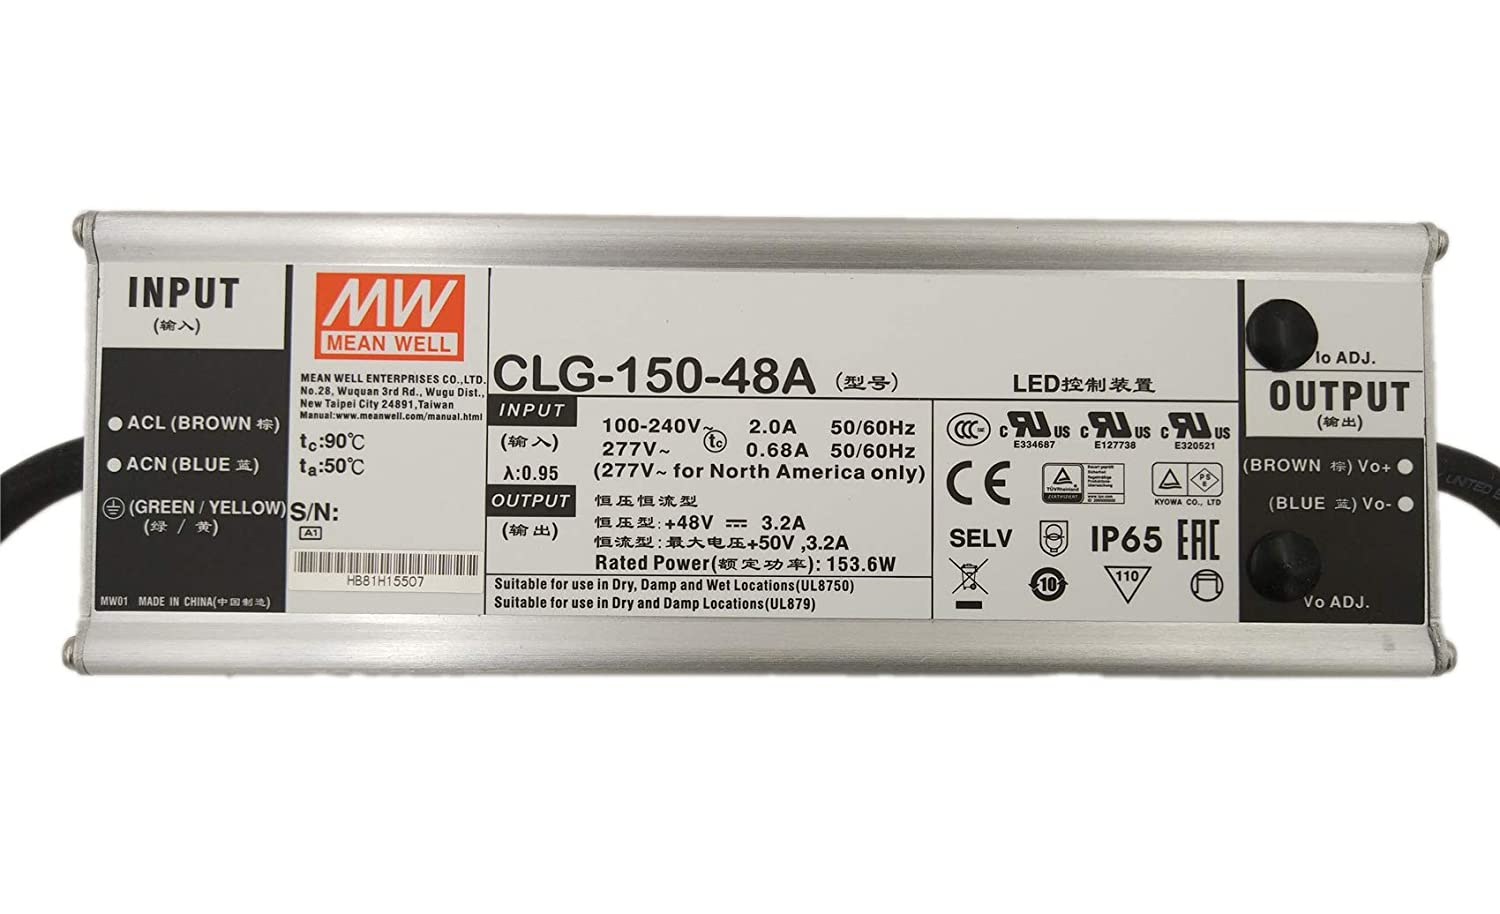 MEAN WELL CLG-150-48A 150 W Single Output 3.2A 48V Short Circuit Protection AC/DC Switch Power Supply - 1 item(s)